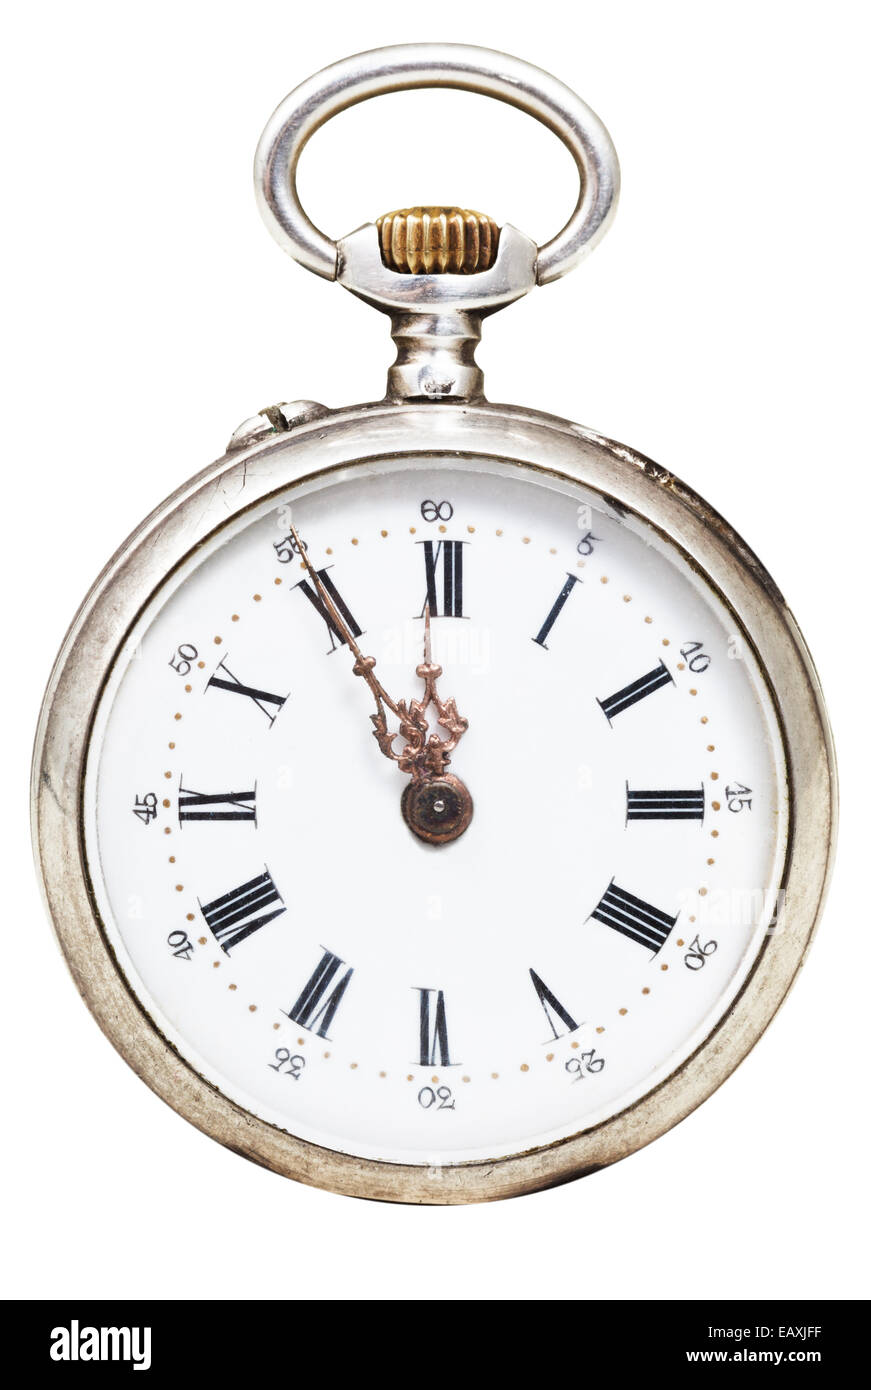 five to twelve o'clock on the dial of retro pocket watch isolated on white background - Stock Image